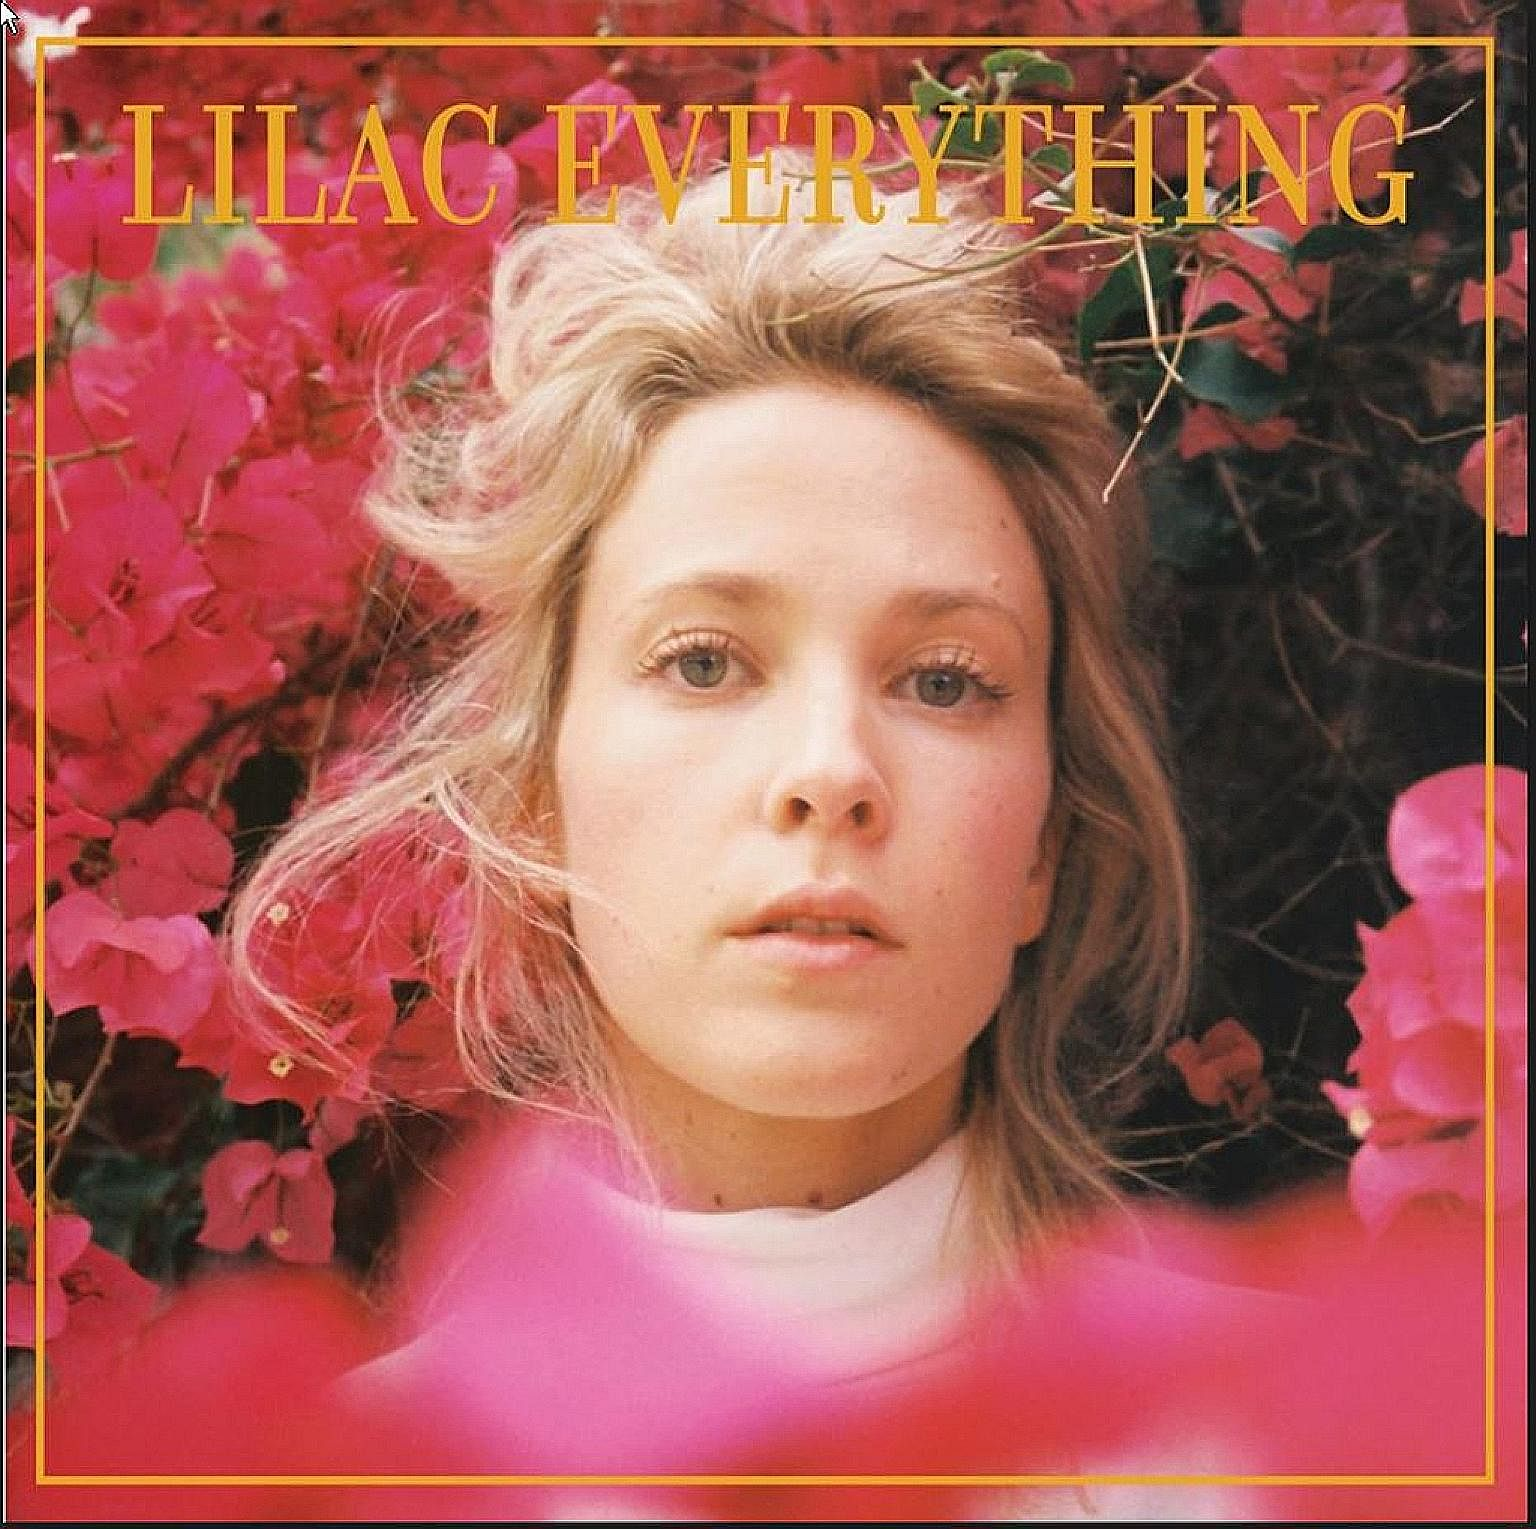 Emma Louise pitched her voice lower for her third album, Lilac Everything.